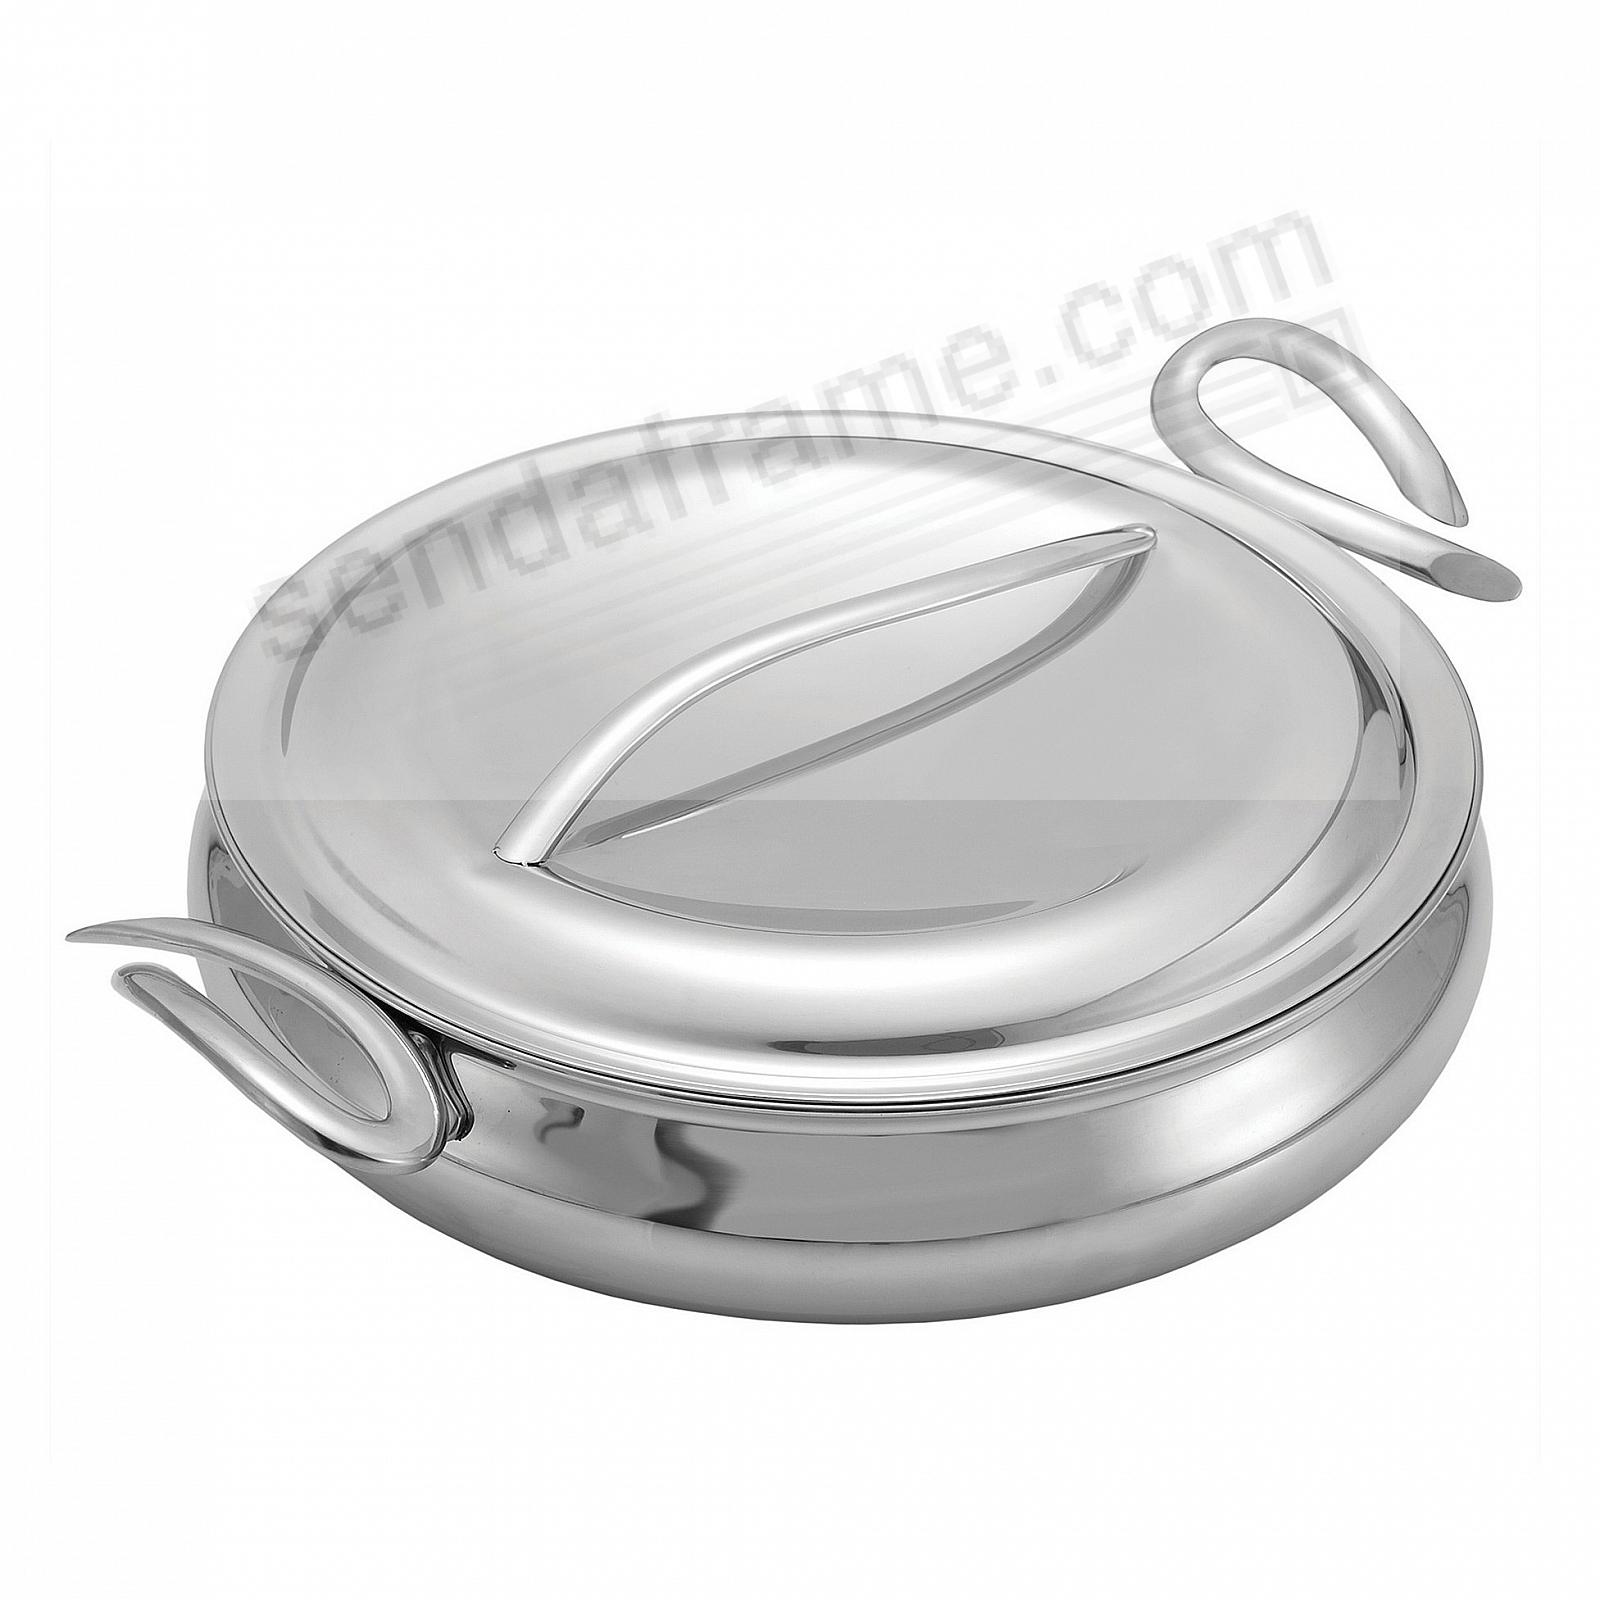 The Original CookServ 12-Inch Saute Pan with Lid by Nambe®